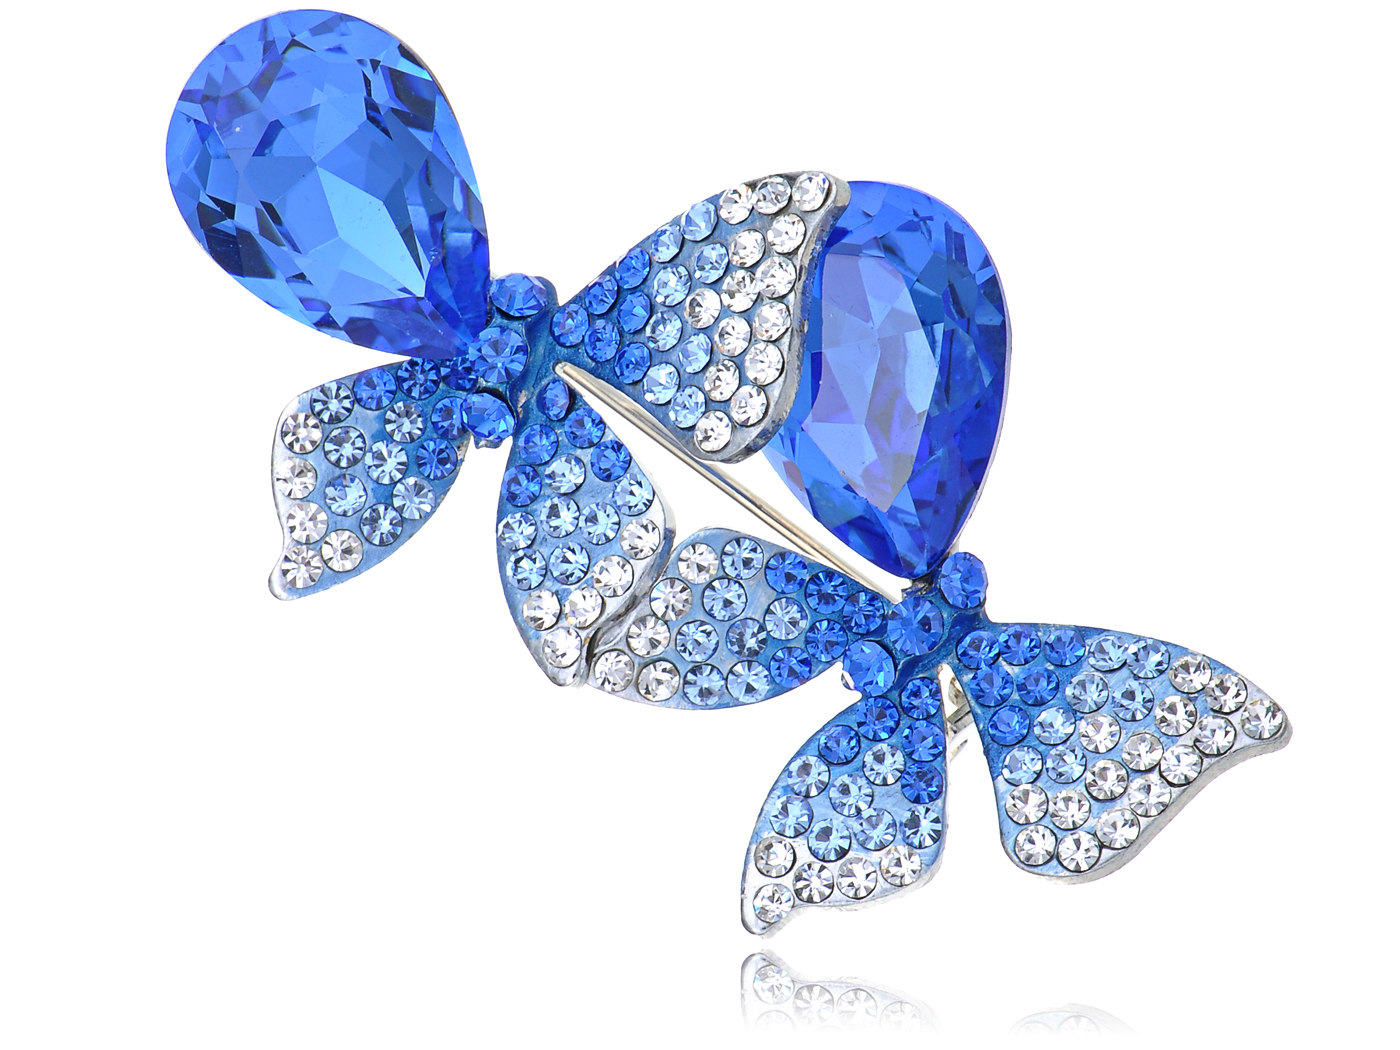 Genuine Elements Blue Sapphire Crystal Butterfly Lovers Duo Pin Brooch by